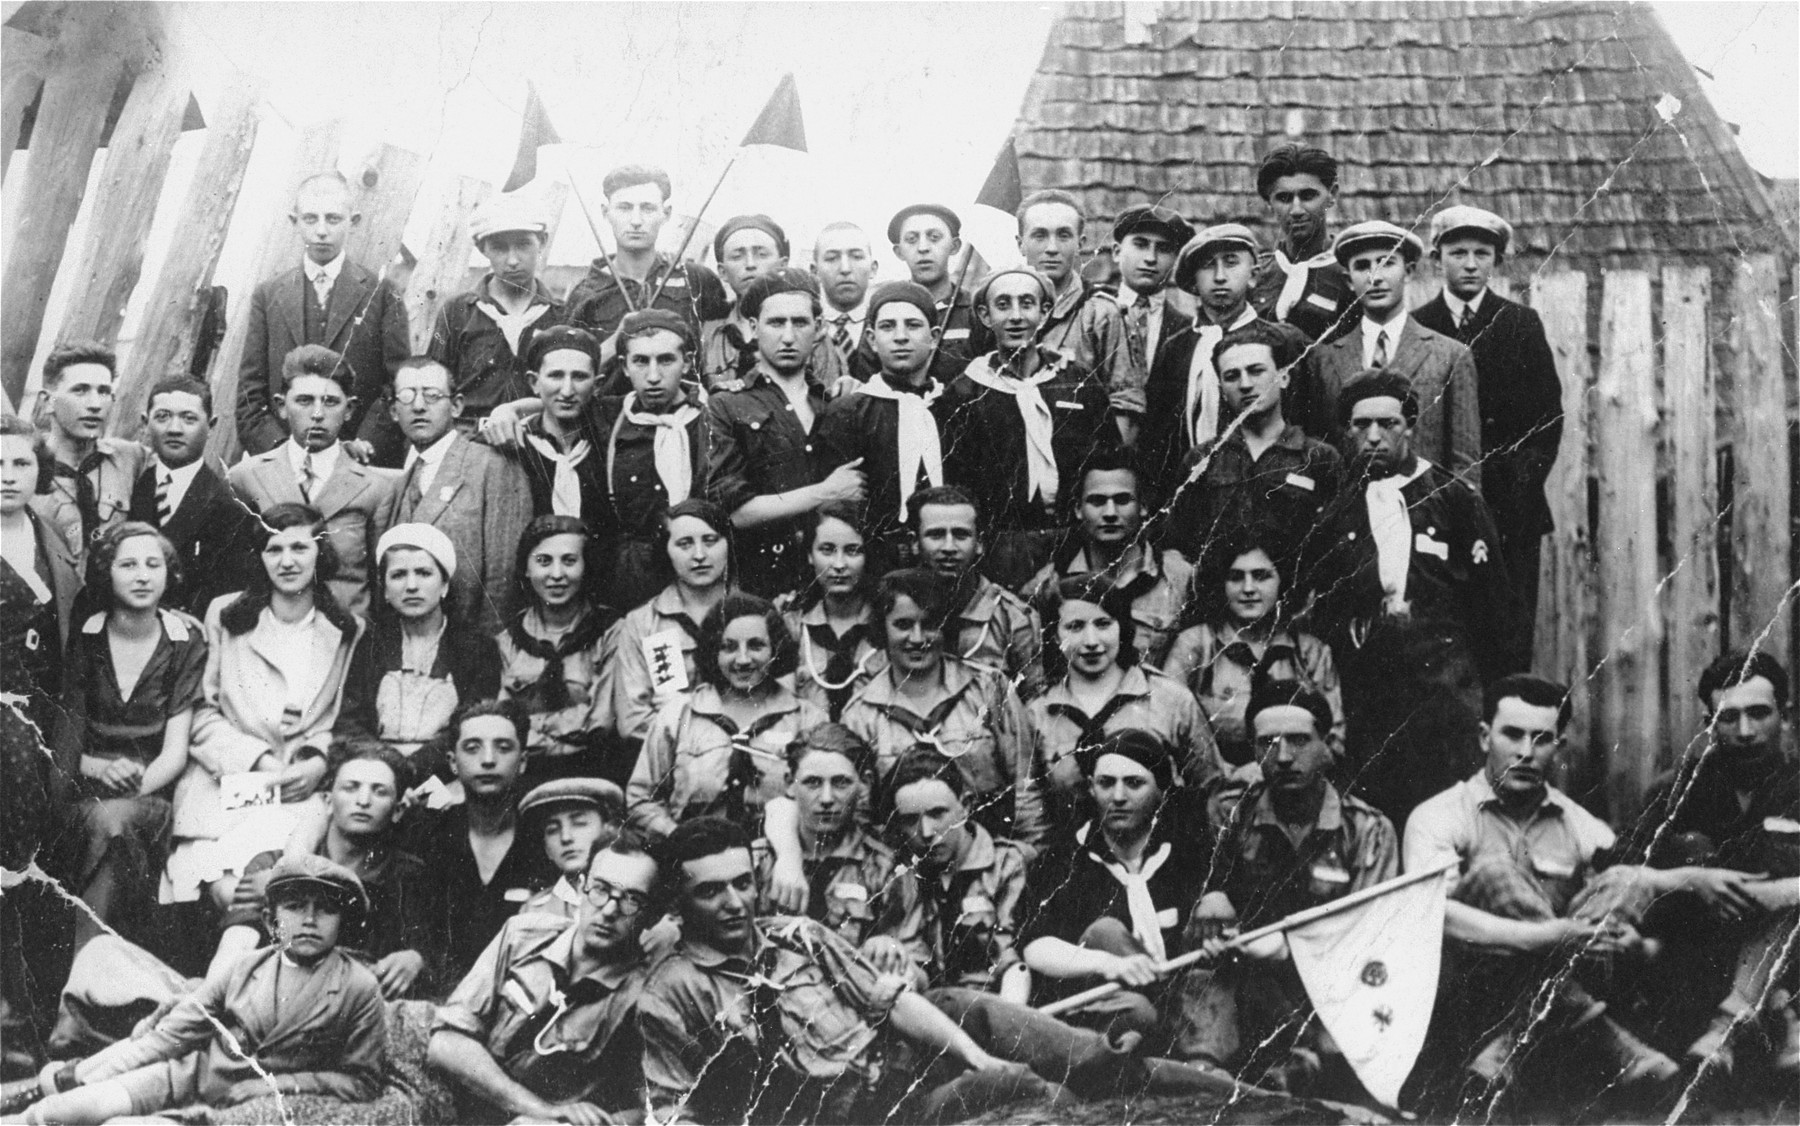 Group portrait of members of the Hanoar Hatzioni Zionist youth organization at a meeting in Tacovo.